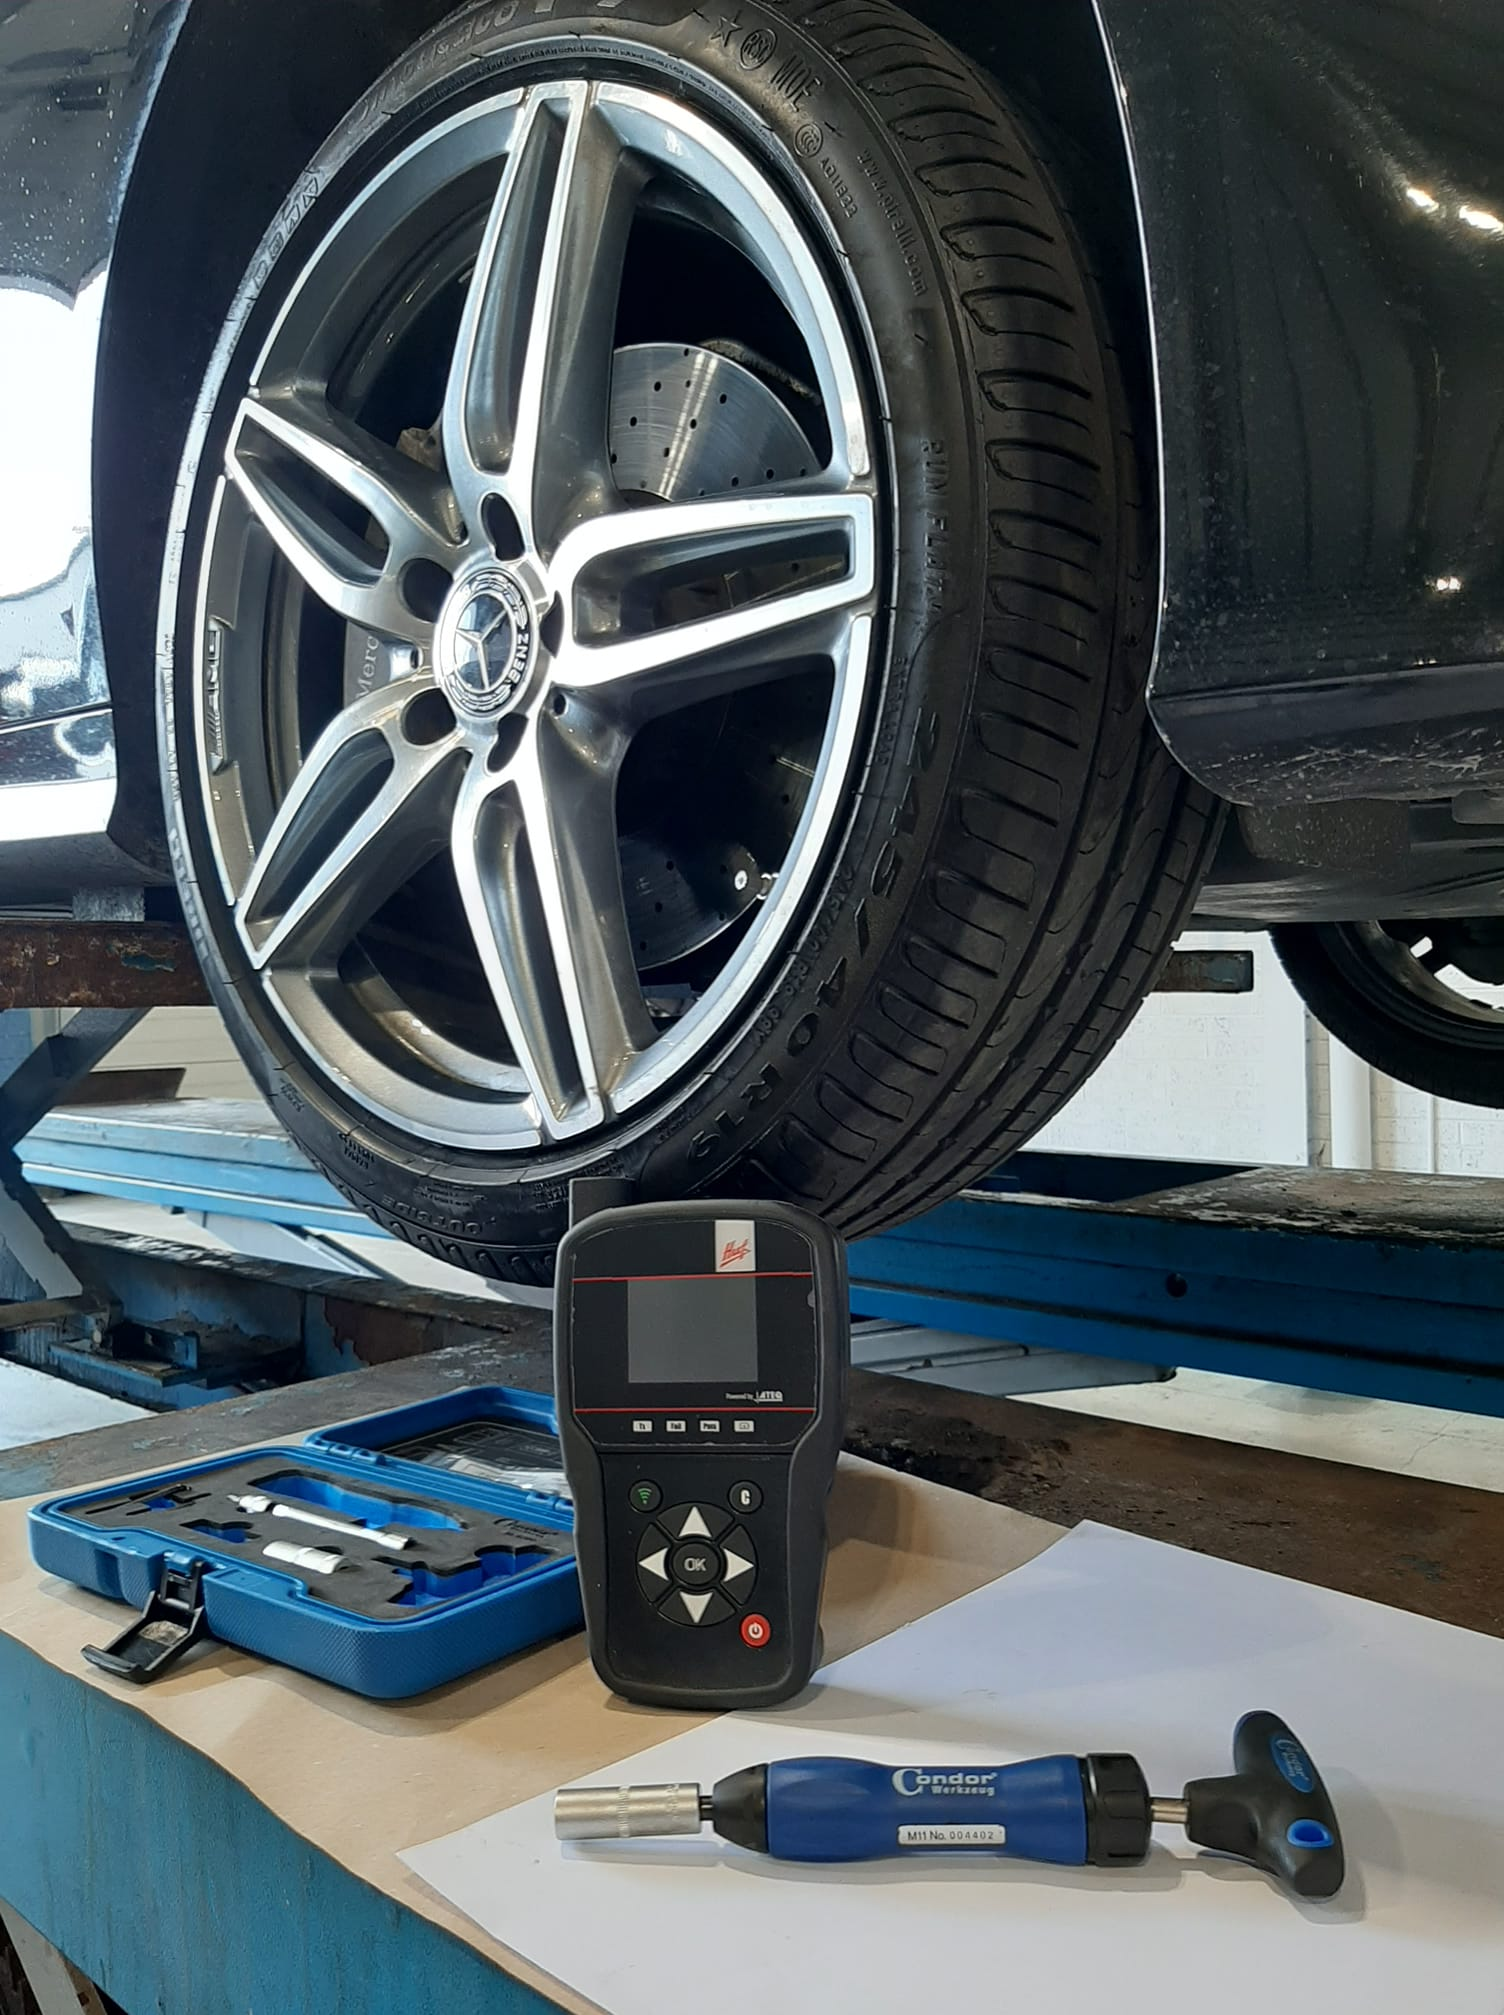 Tyre pressure monitoring system TPMS